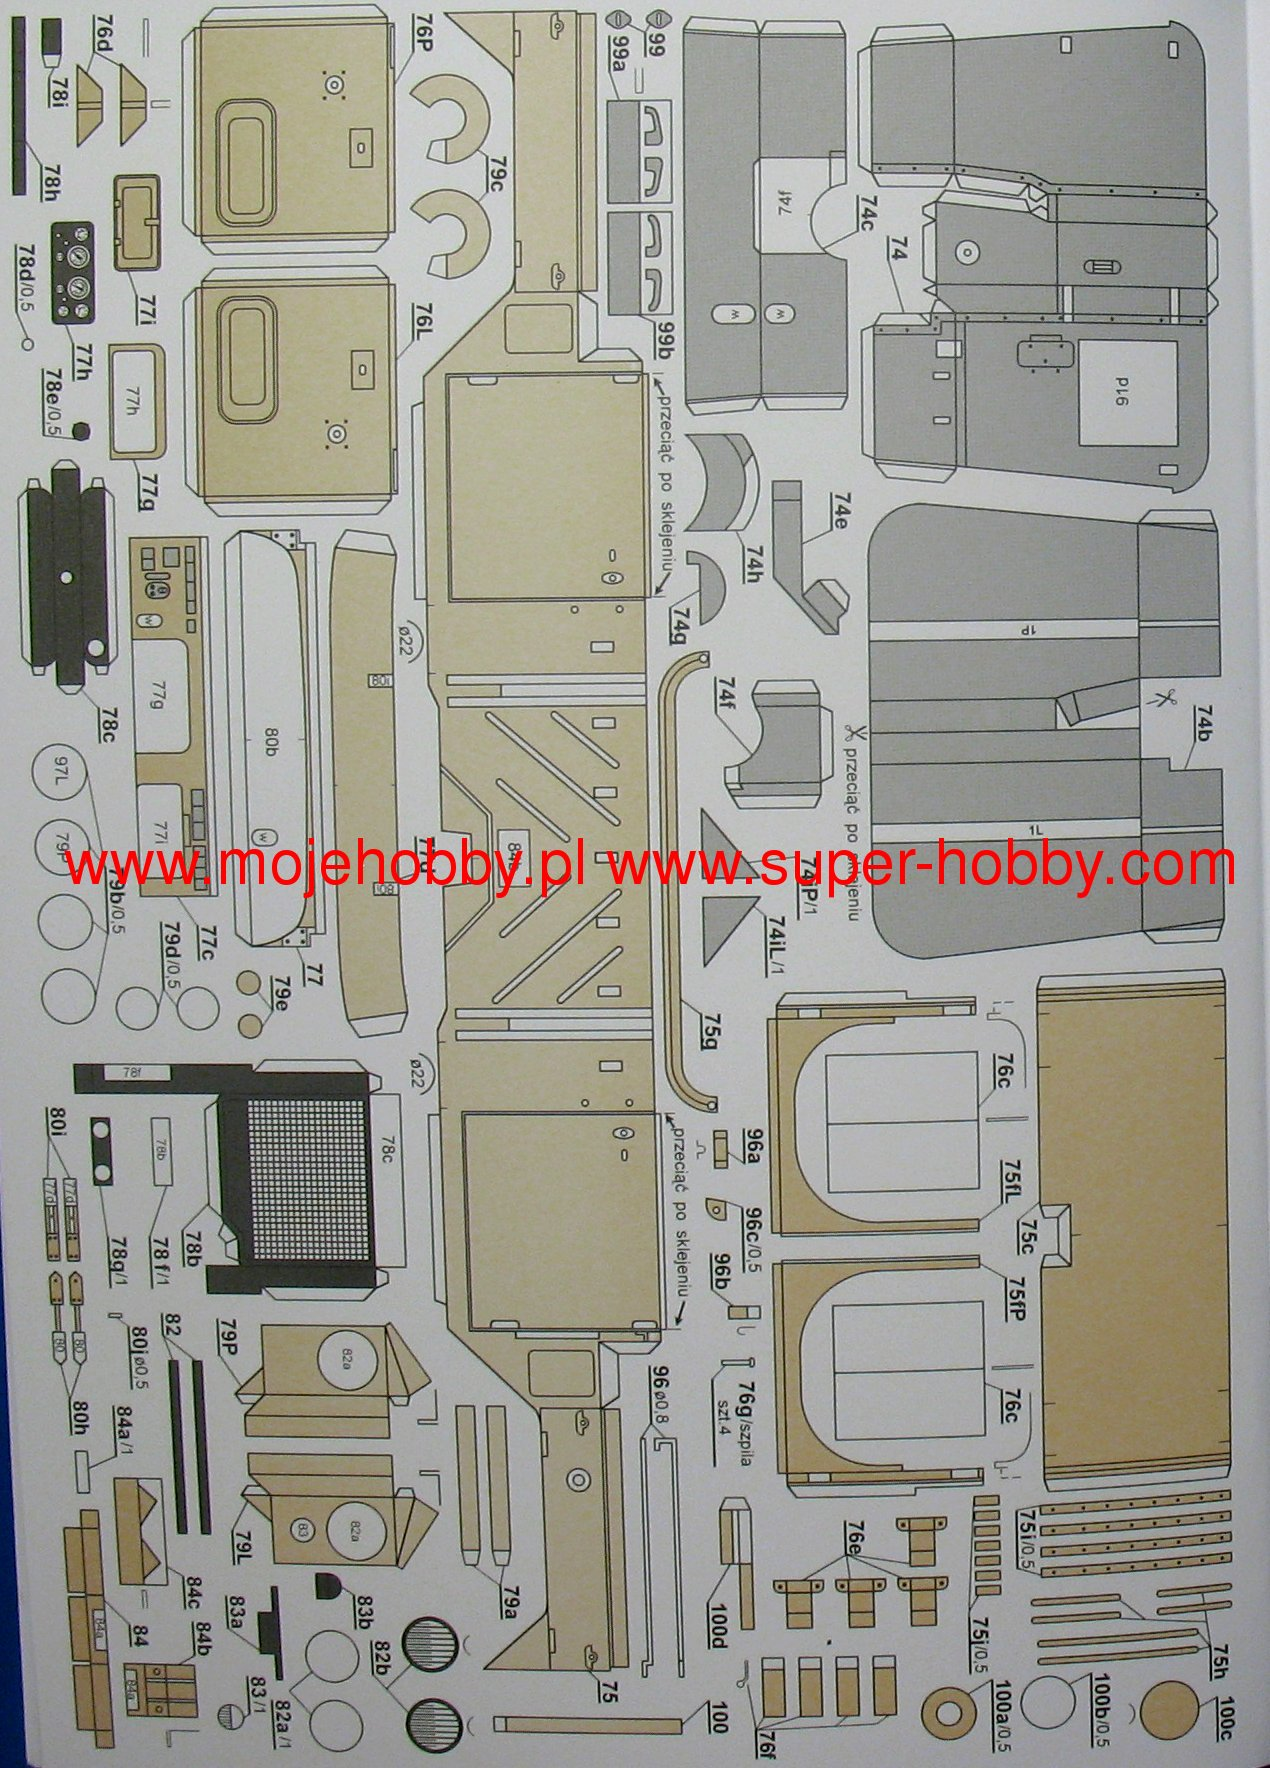 5926_1_mod02_01_16 m35a2 wiring diagram gandul 45 77 79 119 Wiring Harness Diagram at gsmportal.co